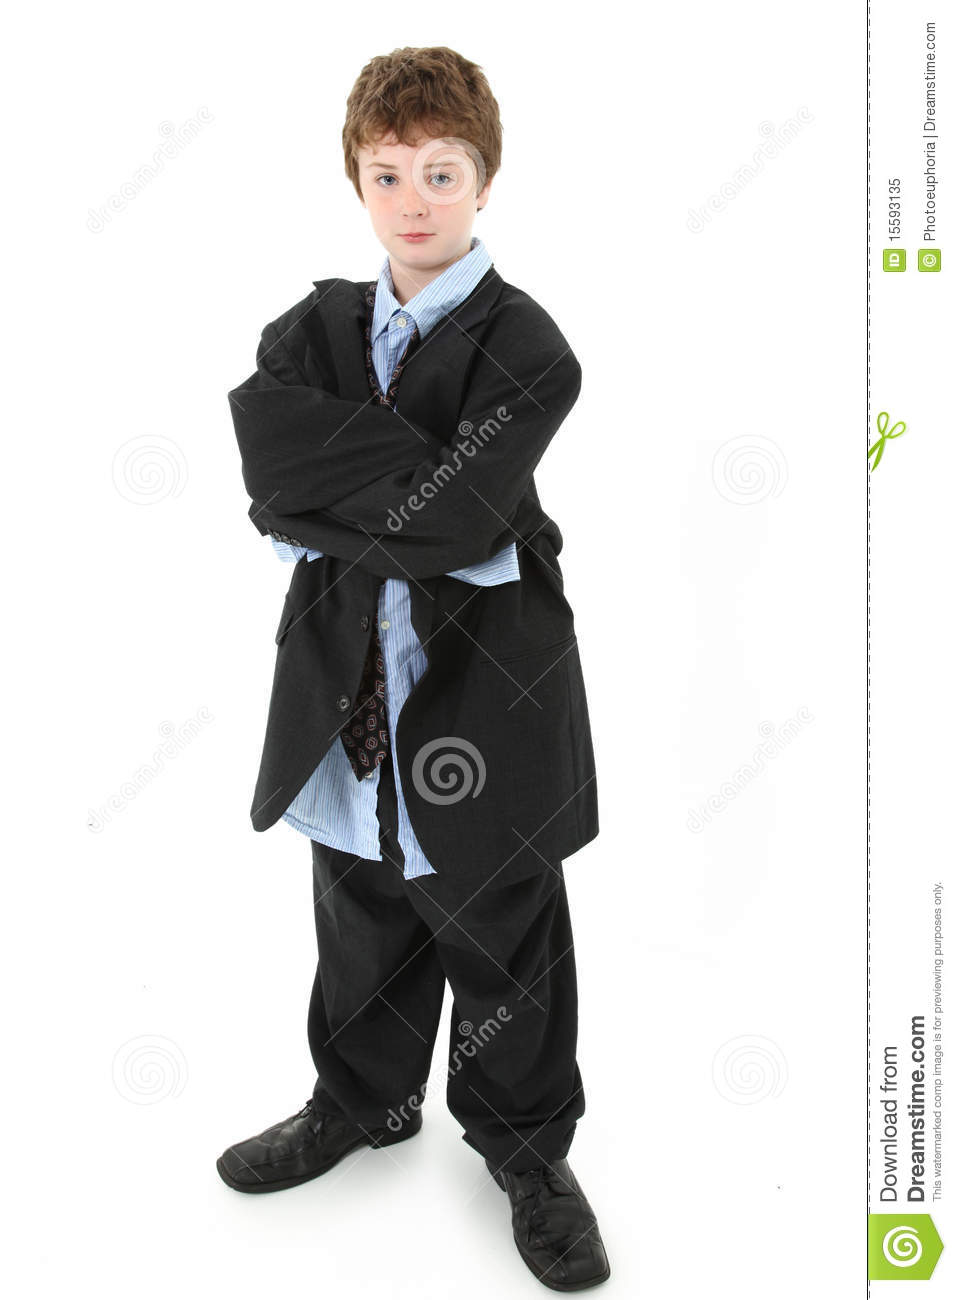 Boy In Baggy Suit Royalty Free Stock Photo Image 15593135